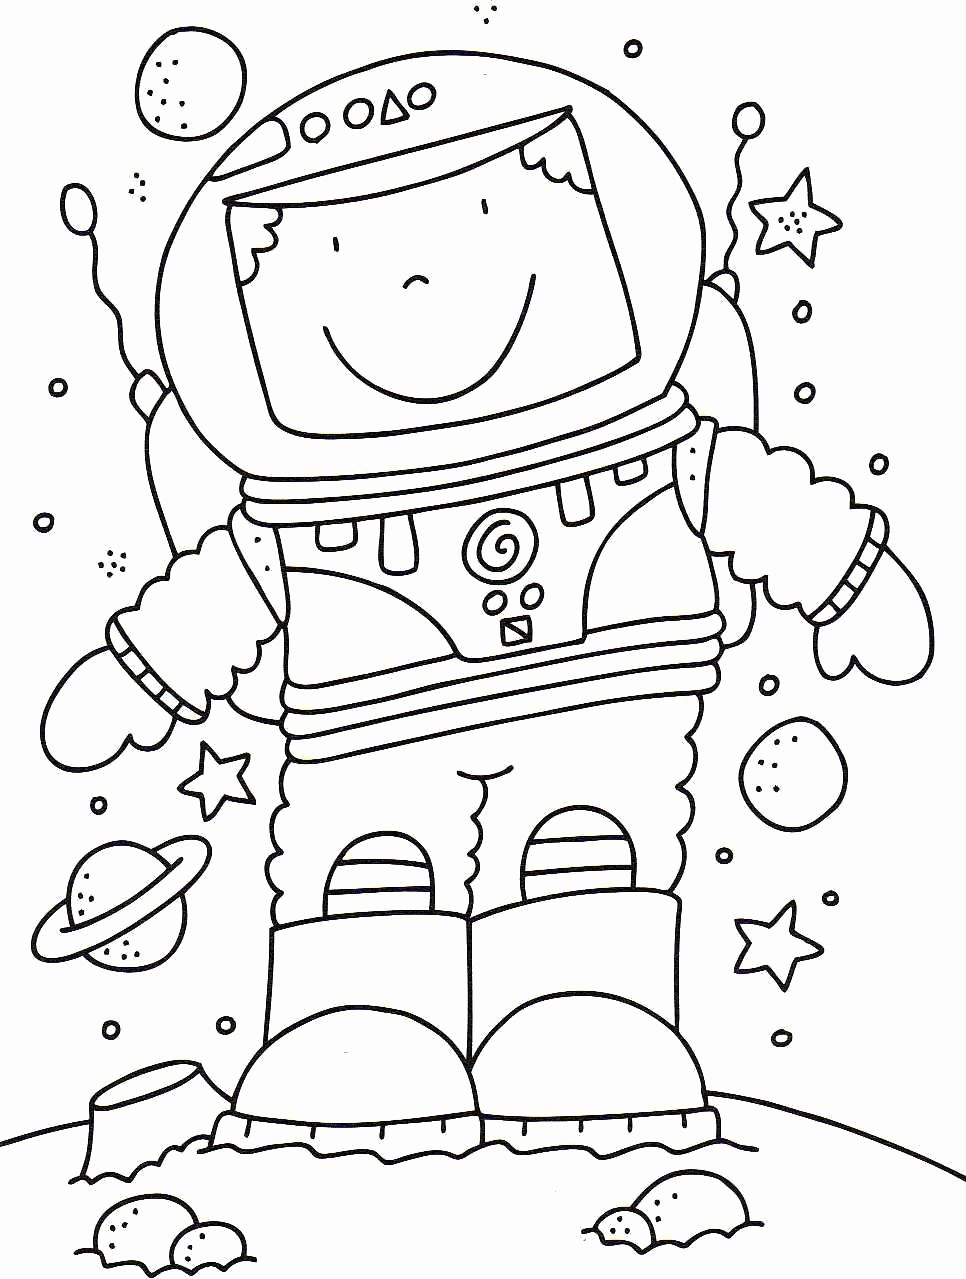 Outer Space Coloring Sheets Unique Astronaut Coloring Pages Google